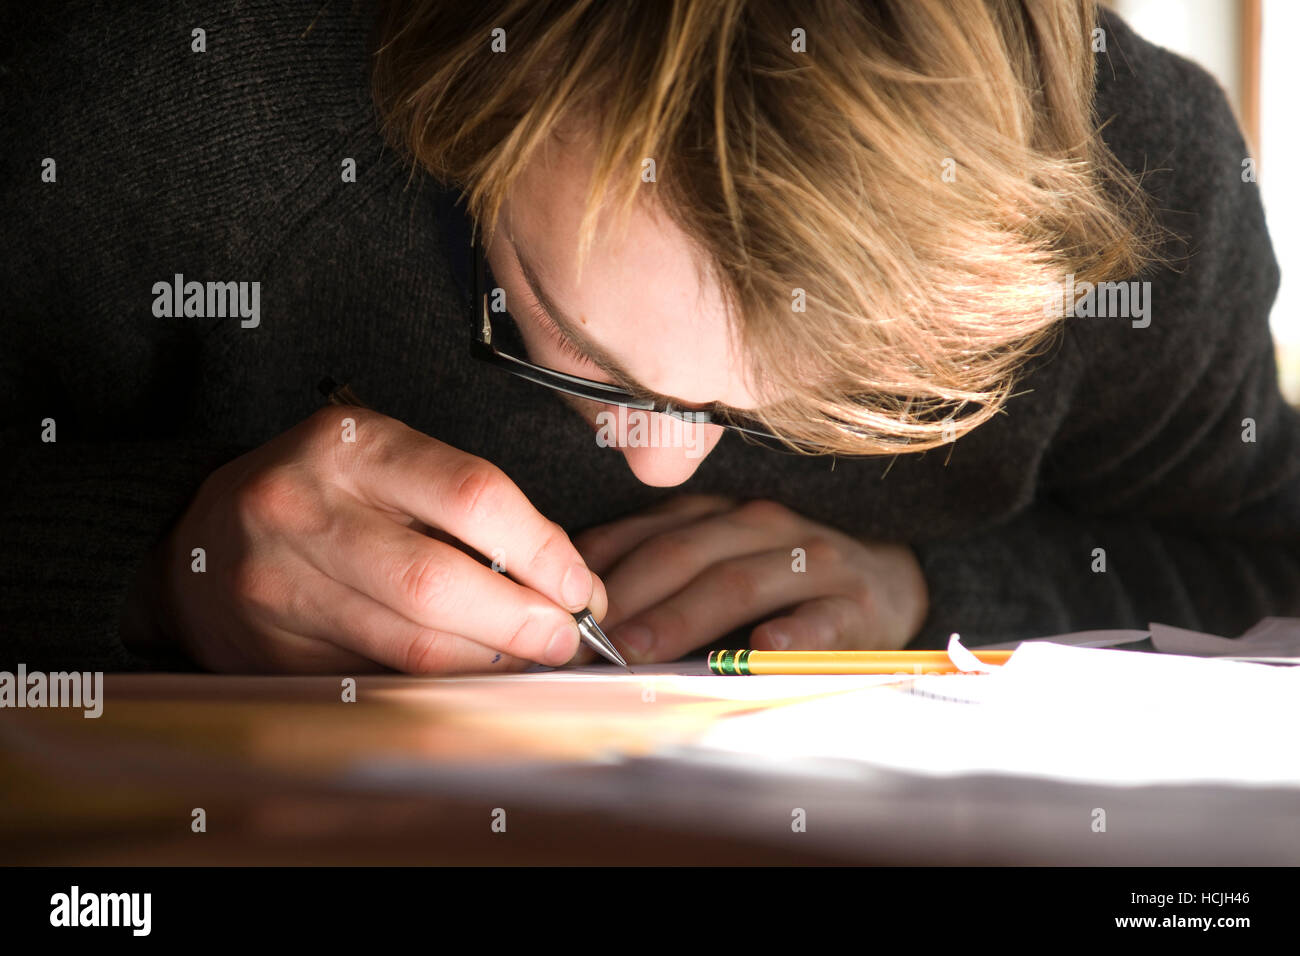 A young man hunched over a desk, intently drawing with a pen. - Stock Image